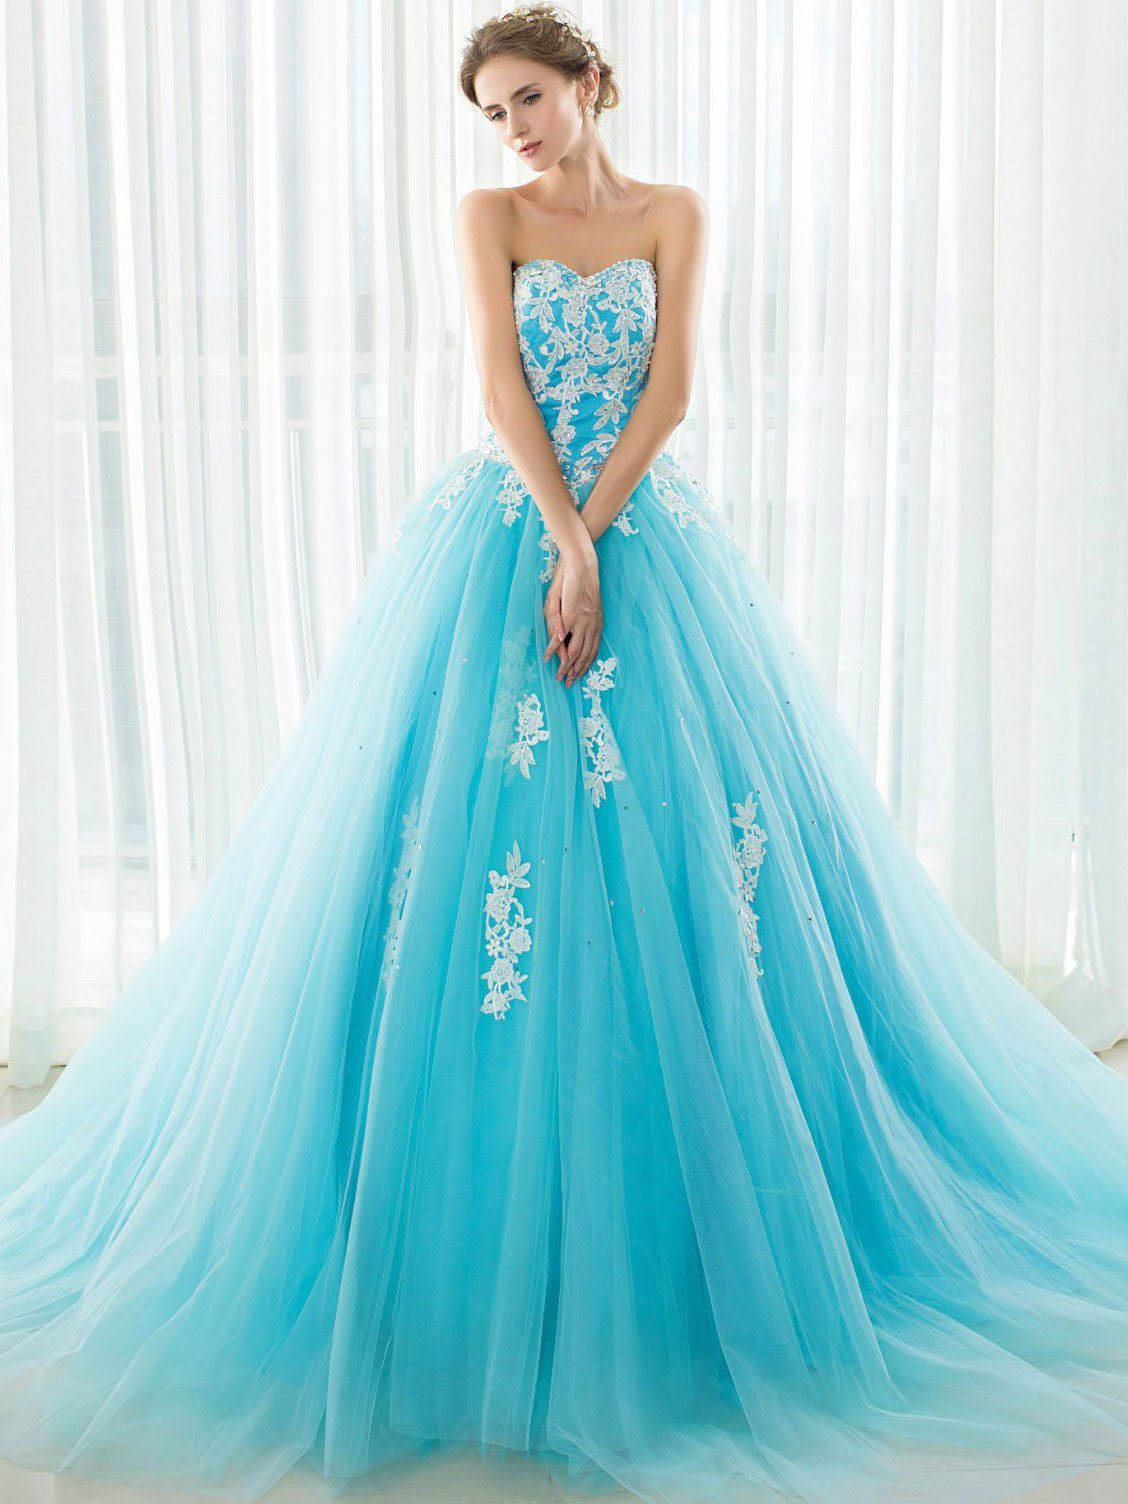 Strapless White Lace Appliqued Tulle Ball Gown Prom Dresses APD3014 ...